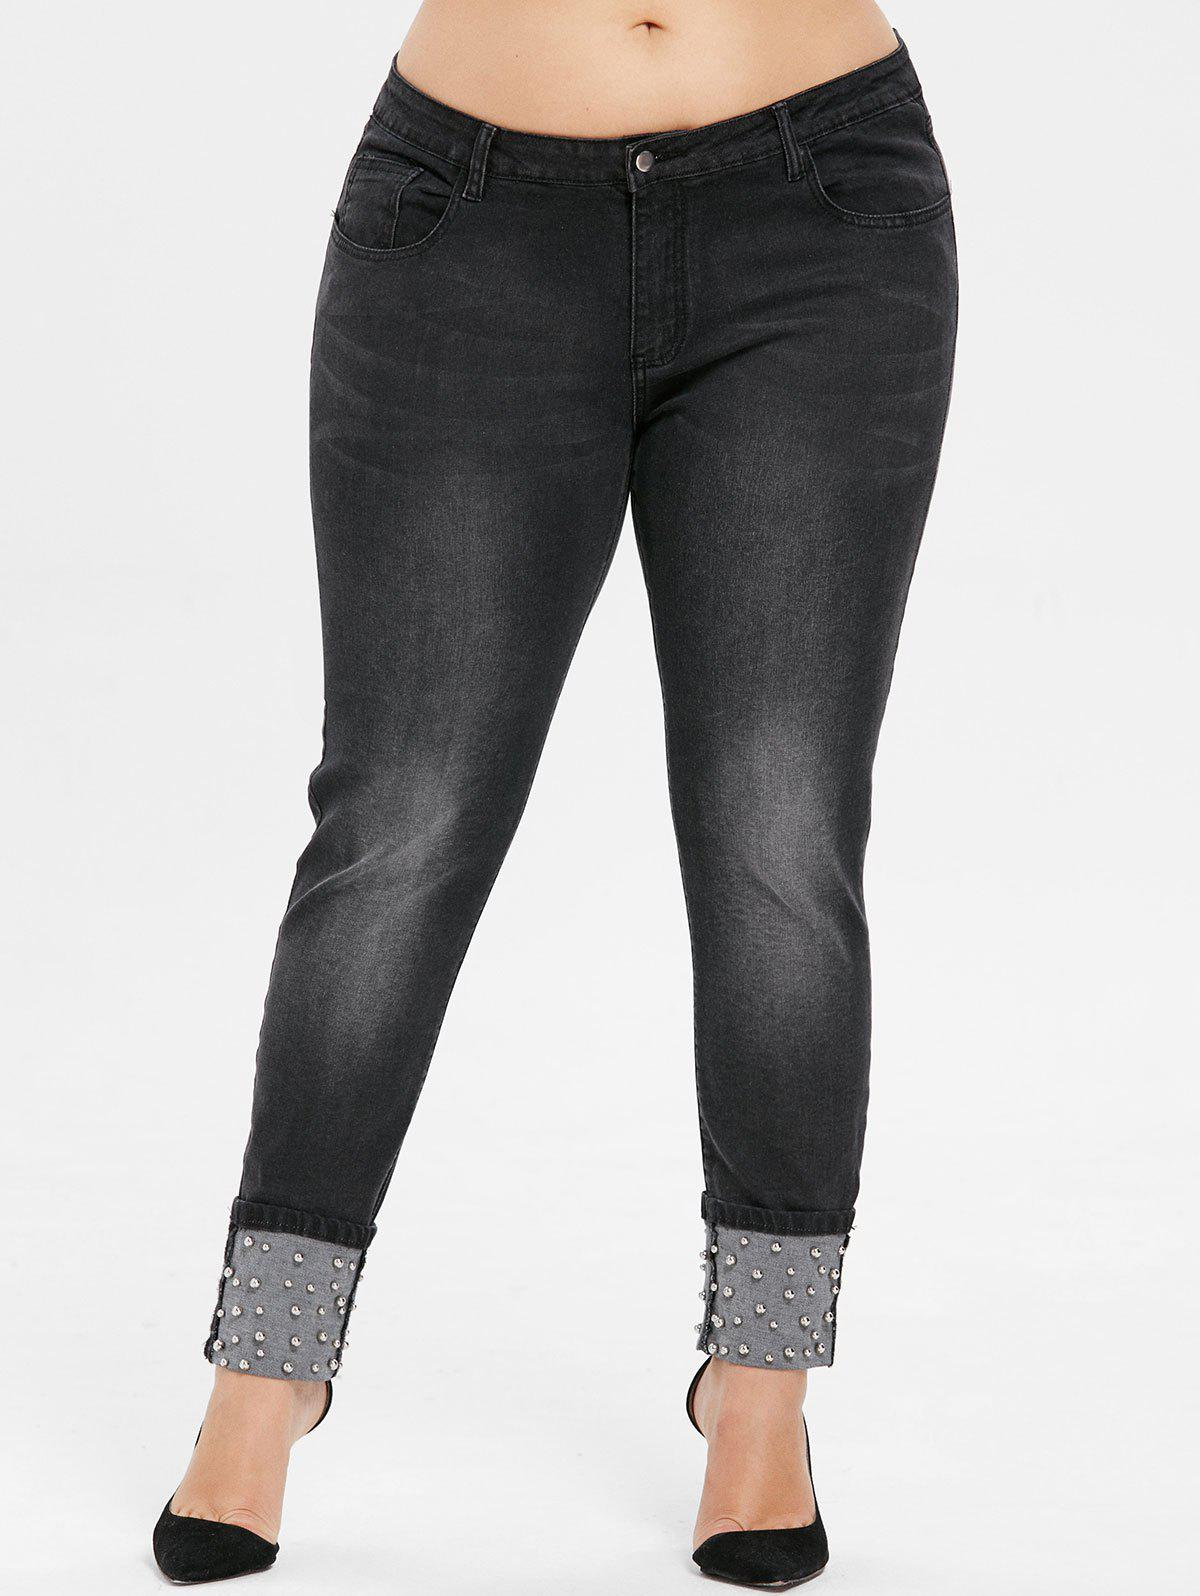 Fancy Plus Size Beading Cuffed Jeans